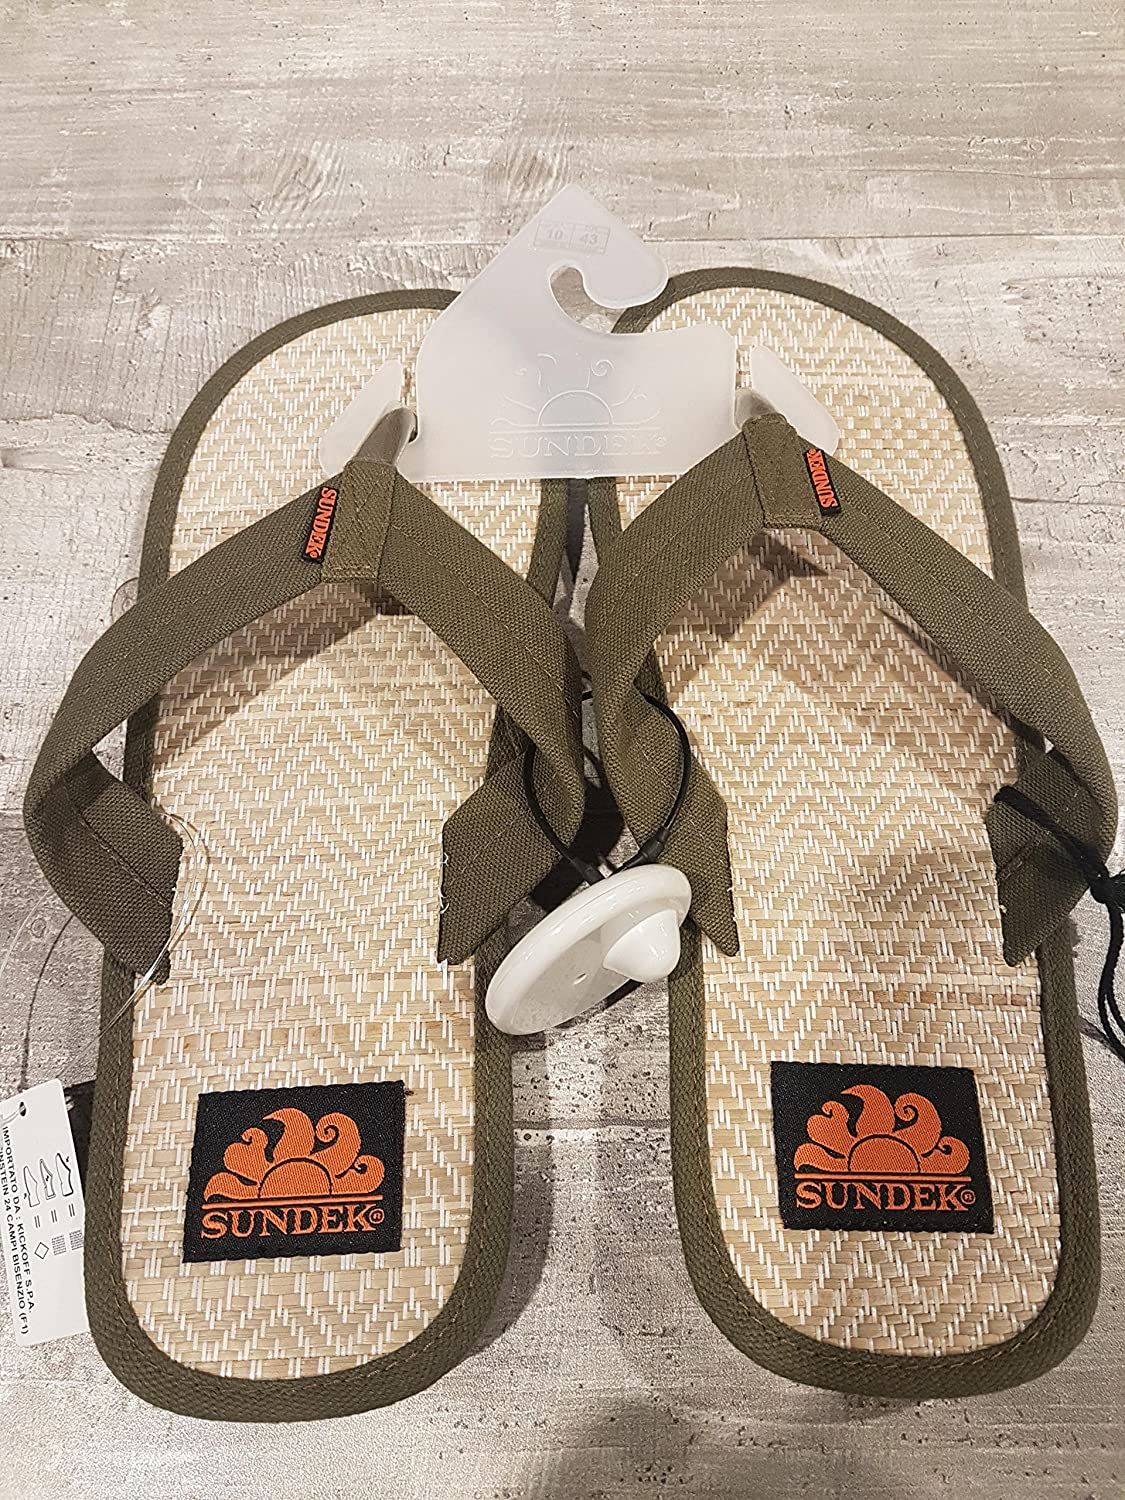 SUNDEK Ciabatte Infradito 43  Amazon.co.uk  Shoes   Bags ef09fd85f38